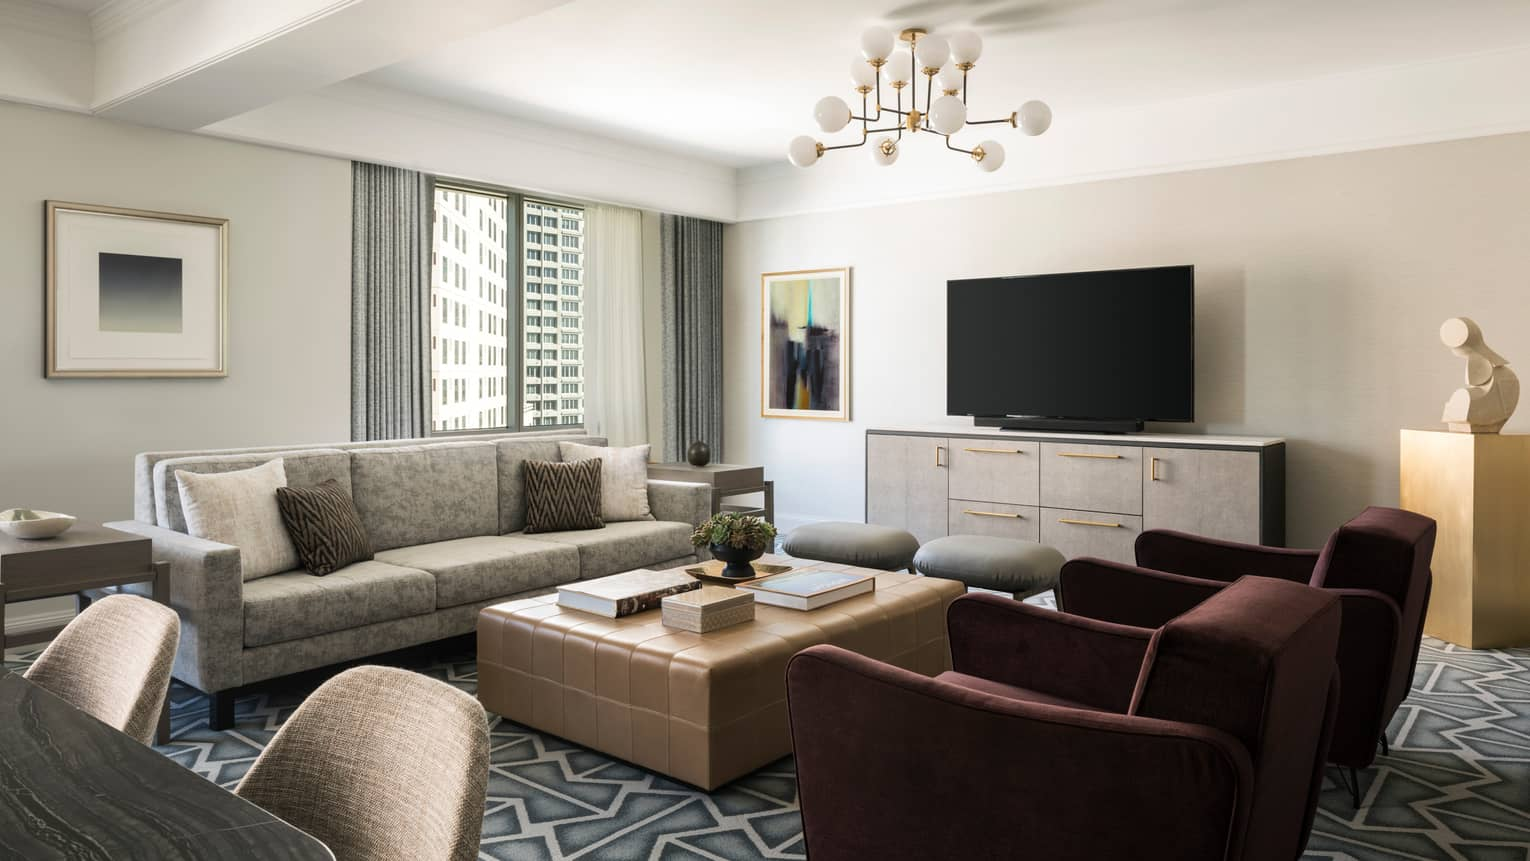 Living room with beige sofa, large square coffee table, two burgundy arm chairs, graphic carpeting